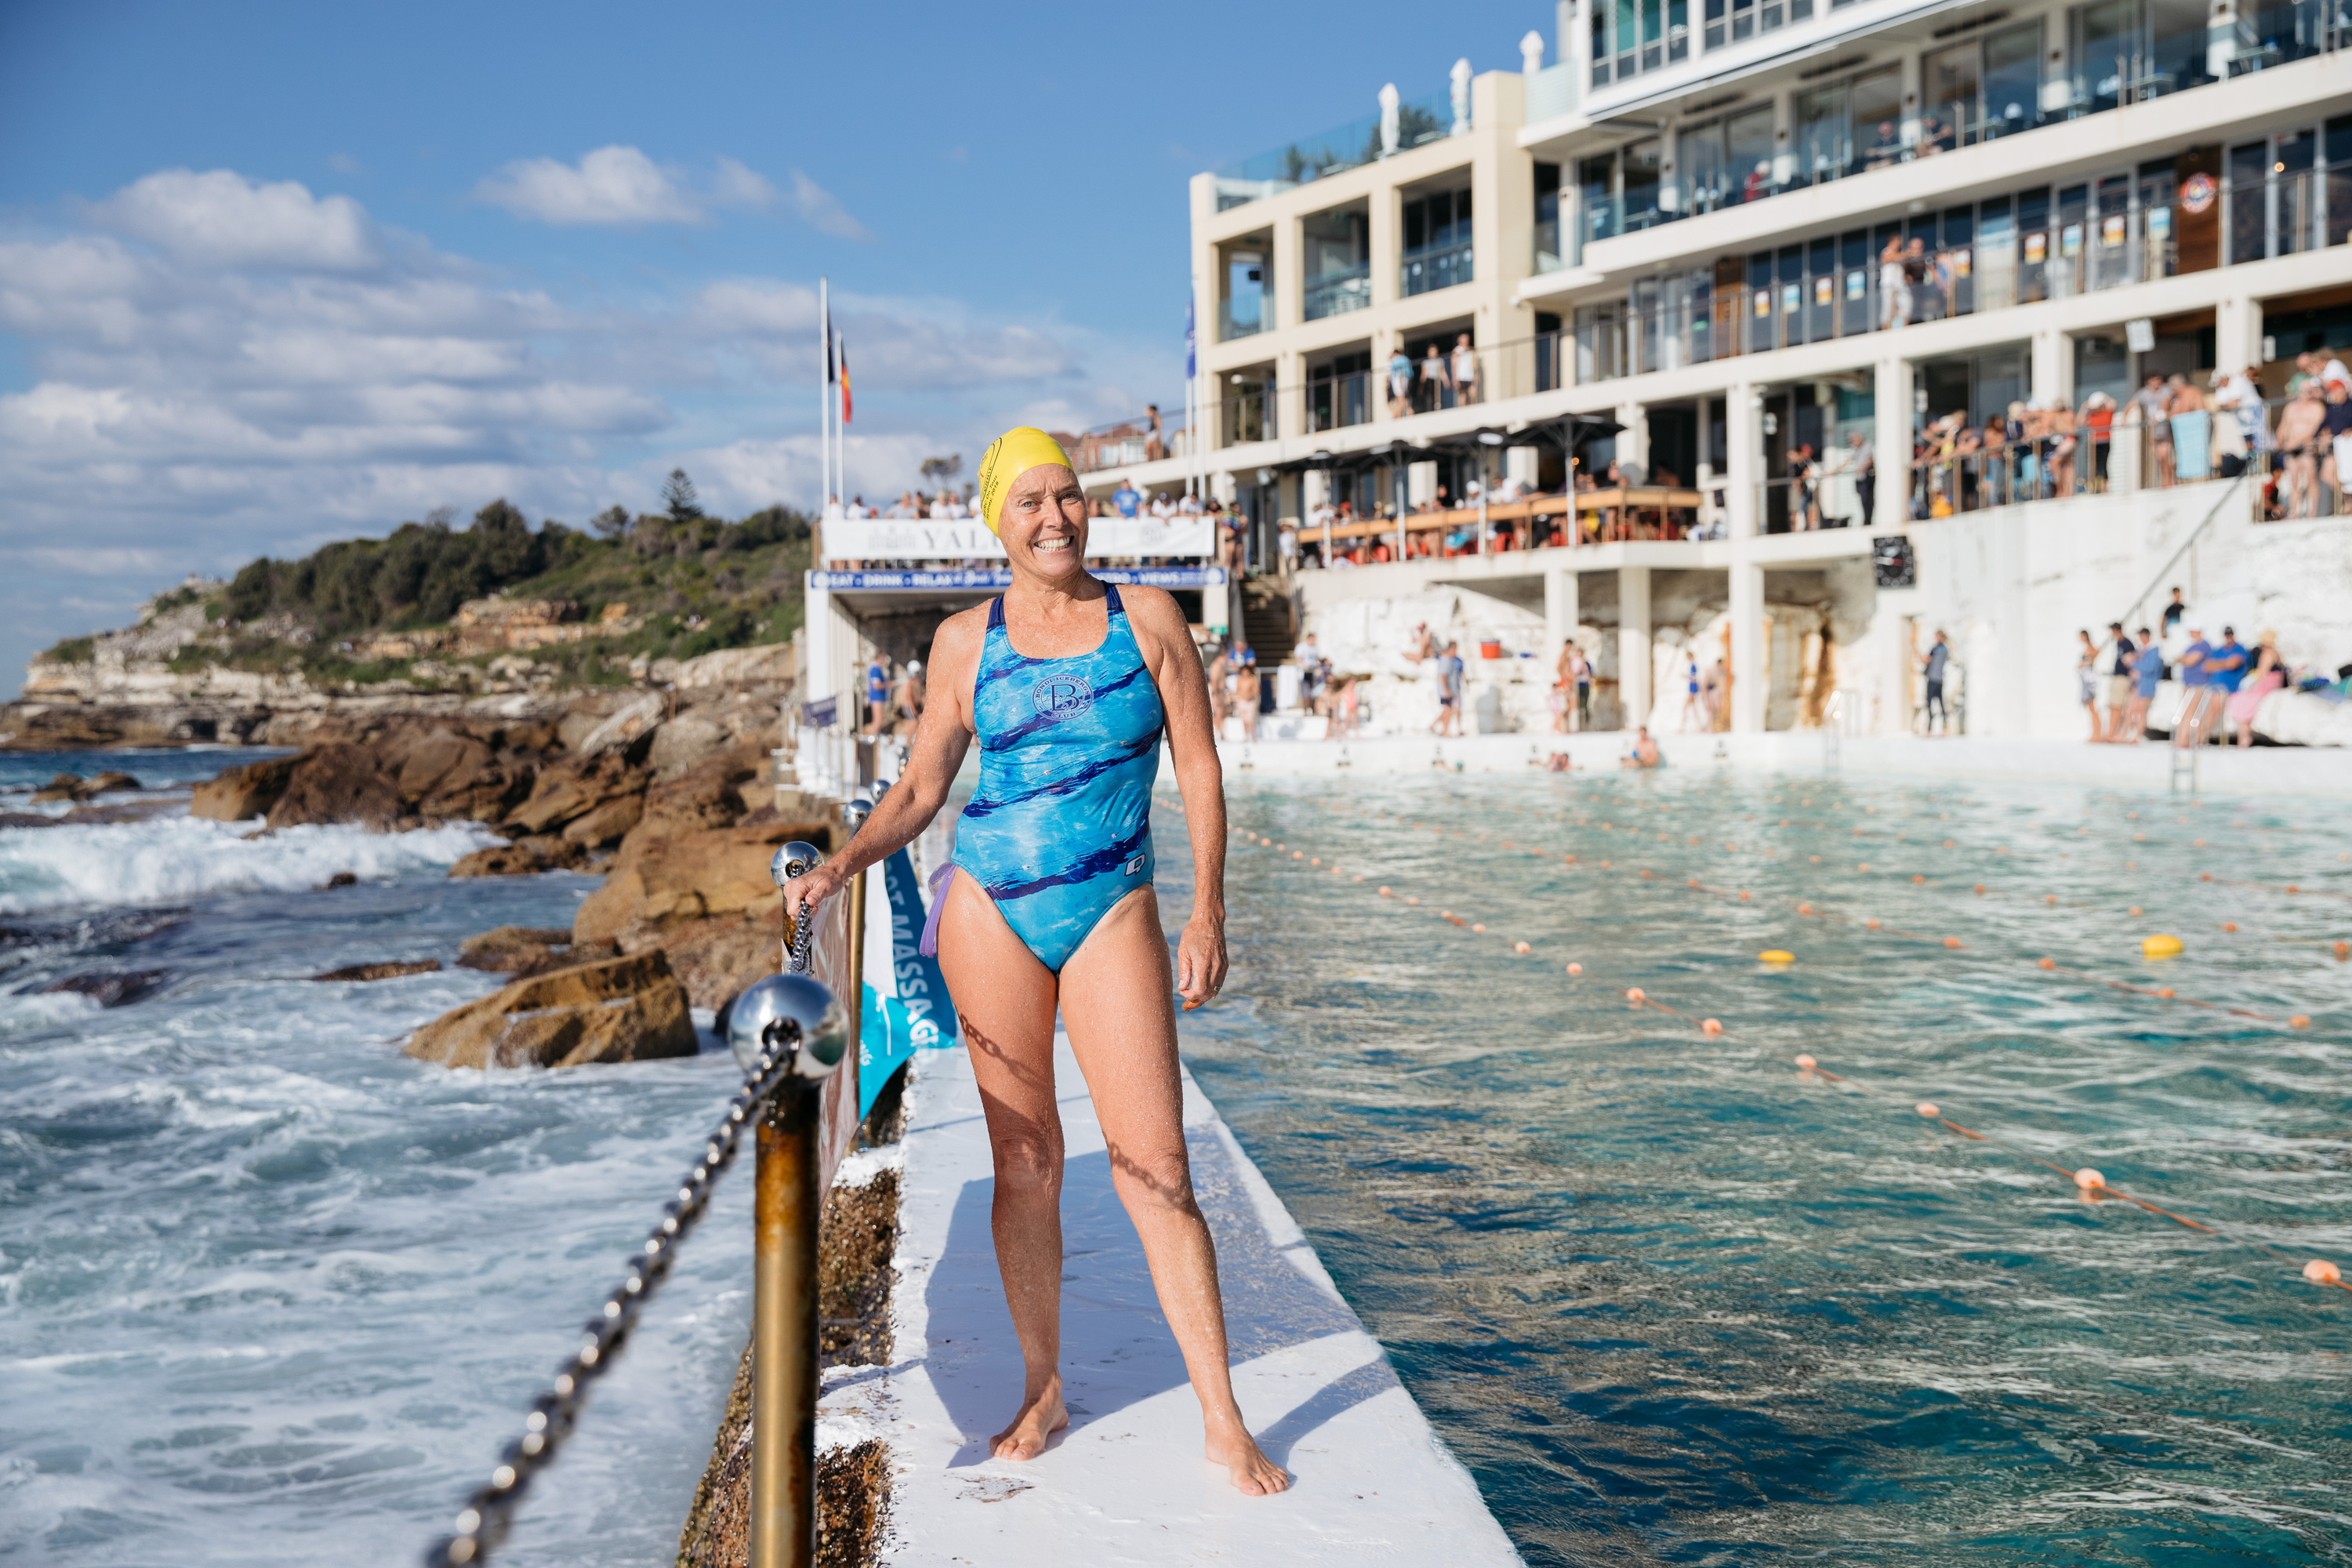 Nicki Vinnicombe, a swimmer at Bondi Icebergs, standing on the side of the pool wearing a yellow swim cap and blue swimming costume